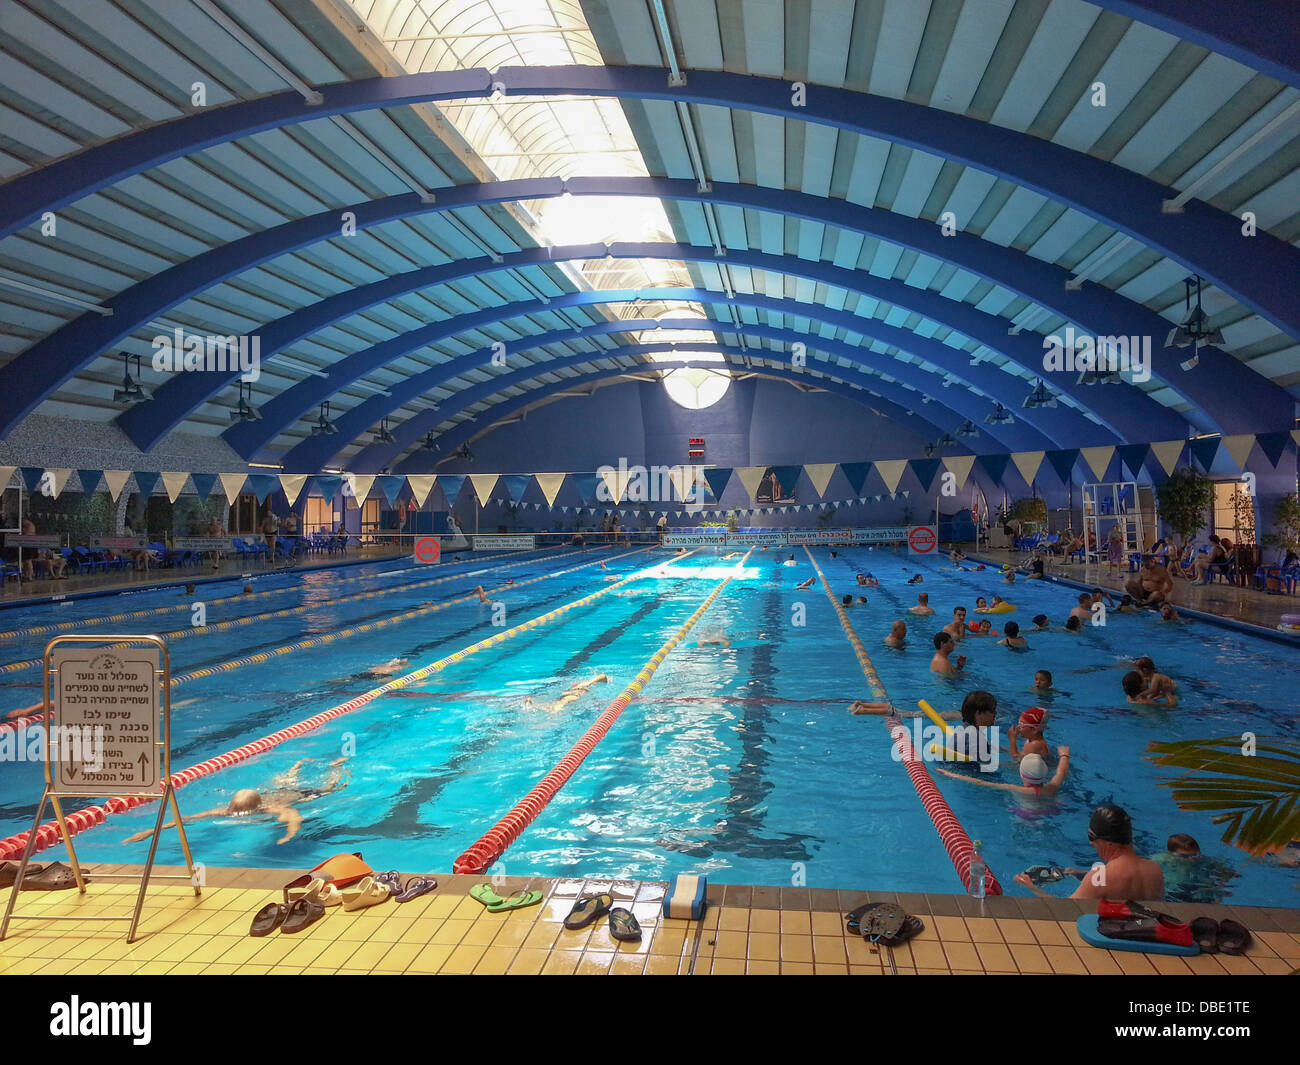 Indoor olympic sized swimming pool at the technion haifa israel stock photo royalty free for Olympic swimming pool pictures